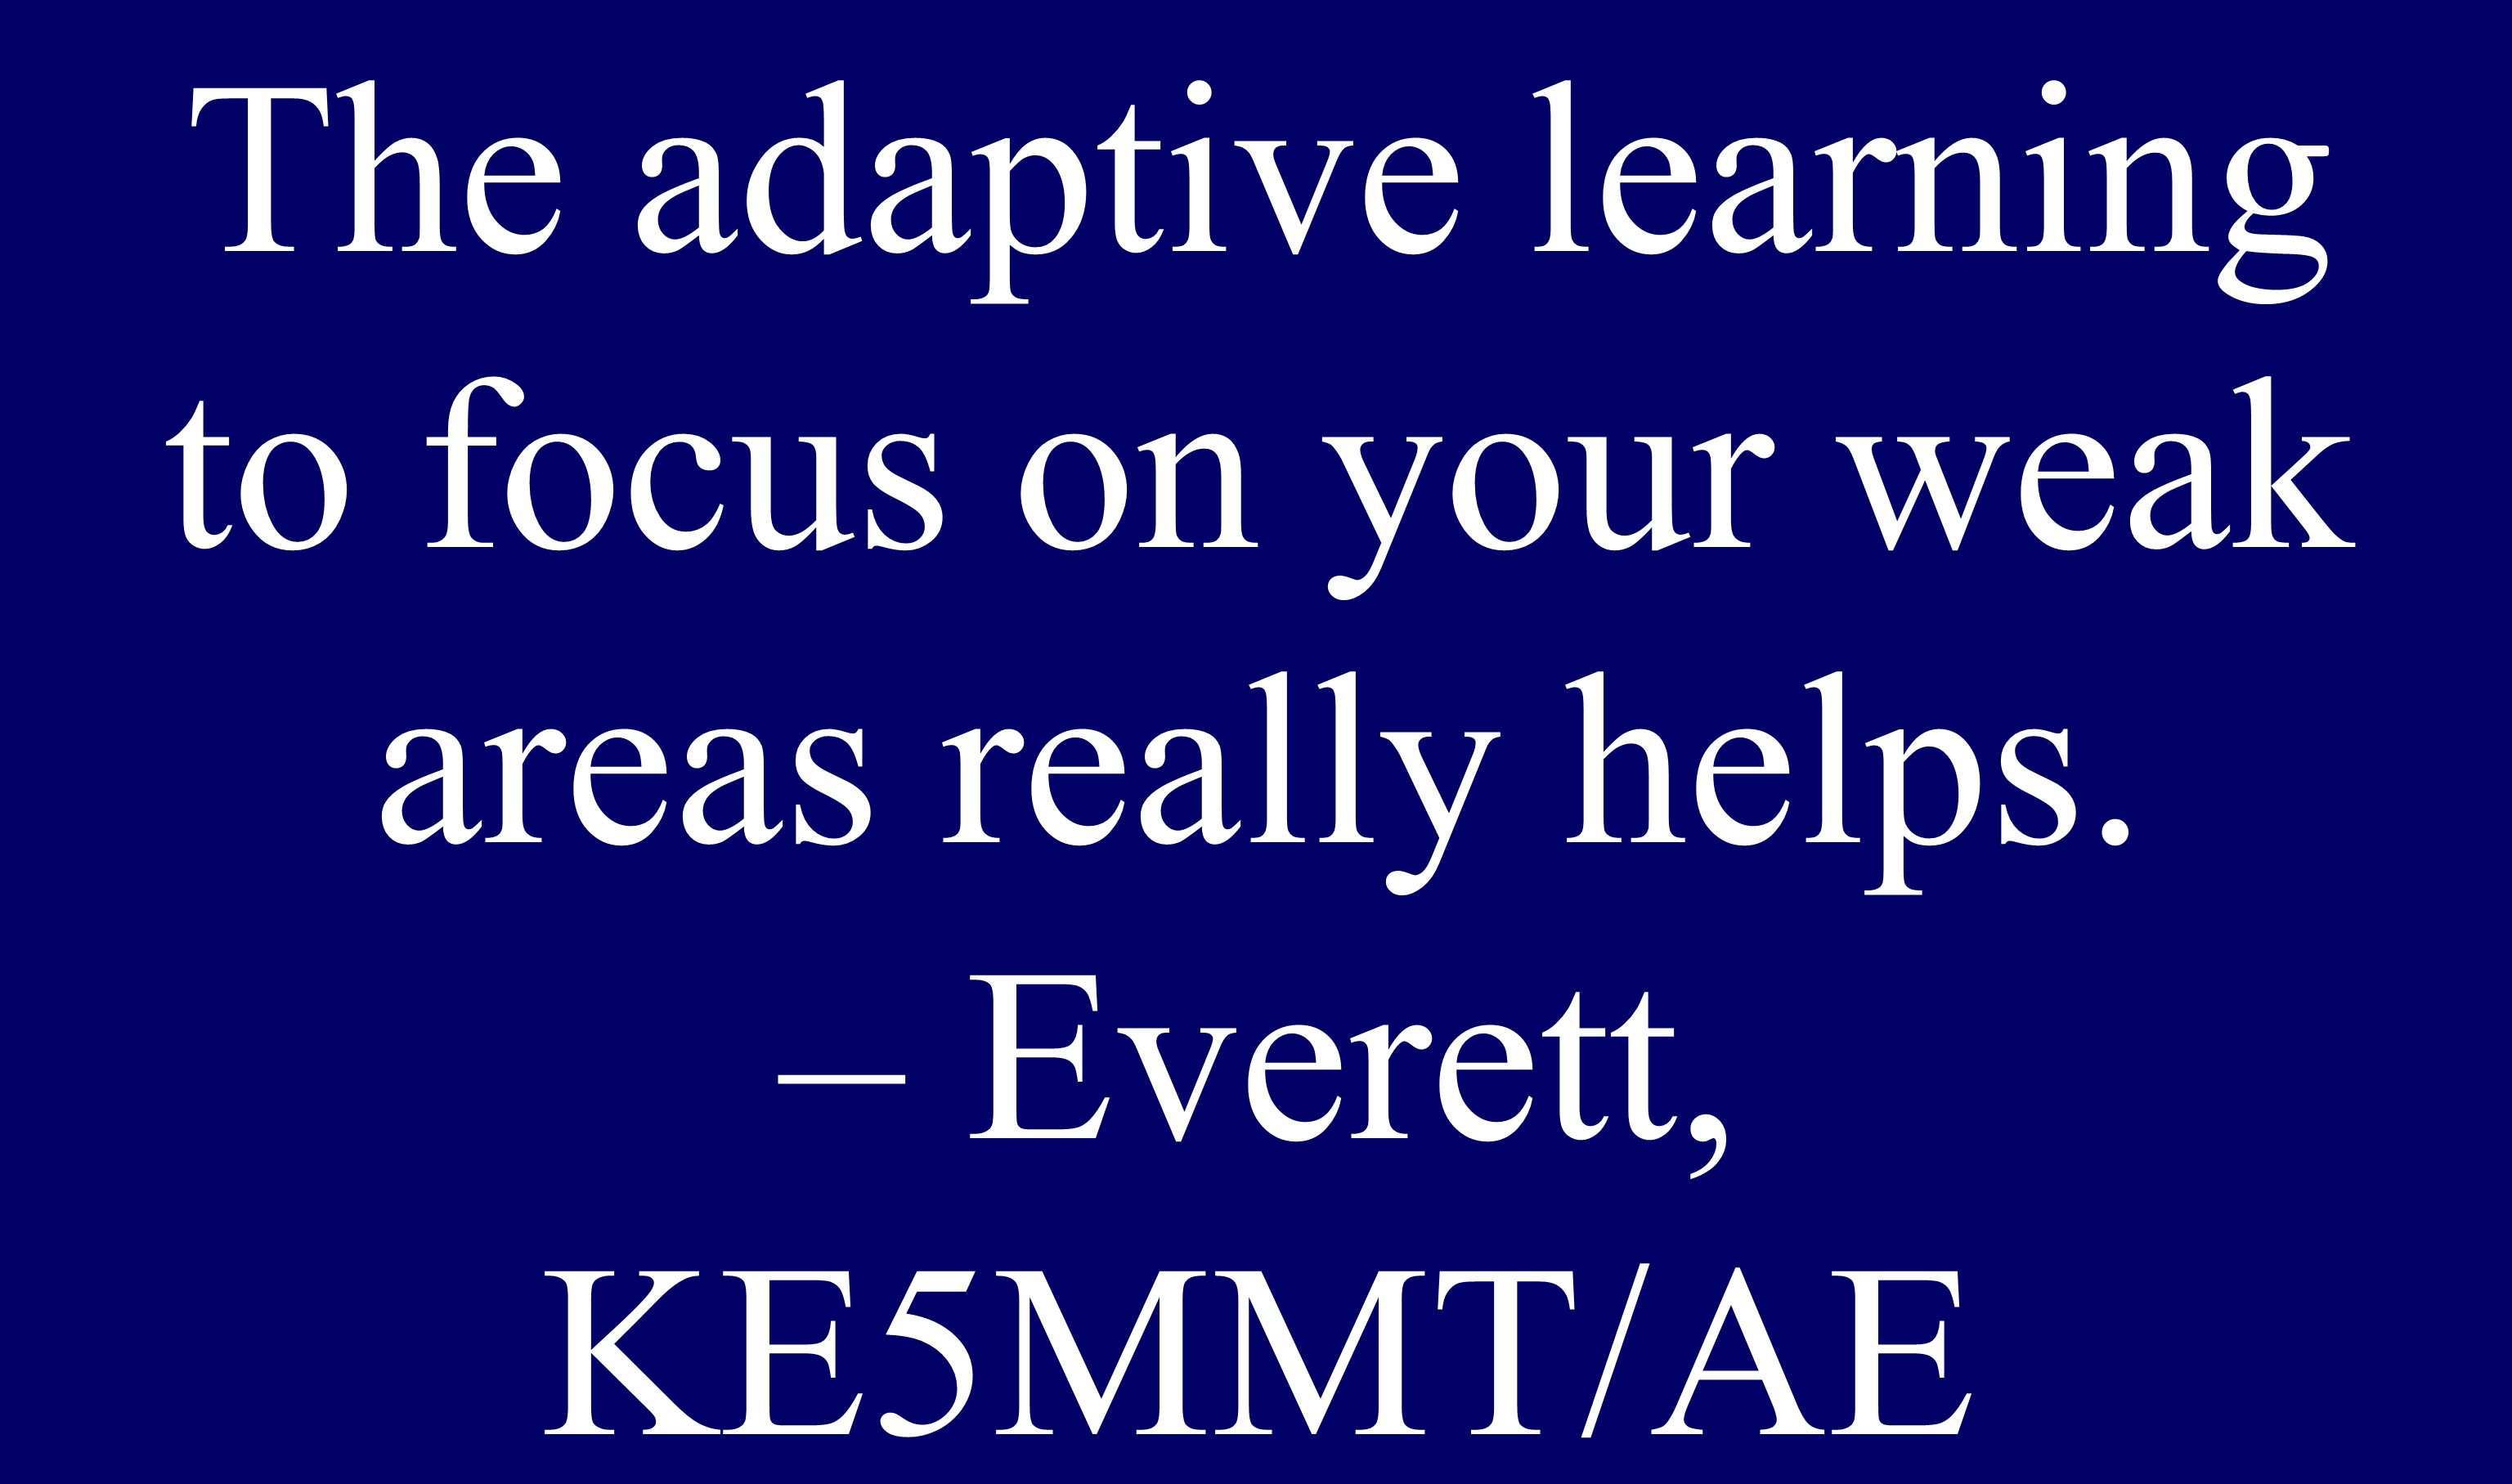 The adaptive learning to focus on your weak areas really helps. – Everett, KE5MMT/AE